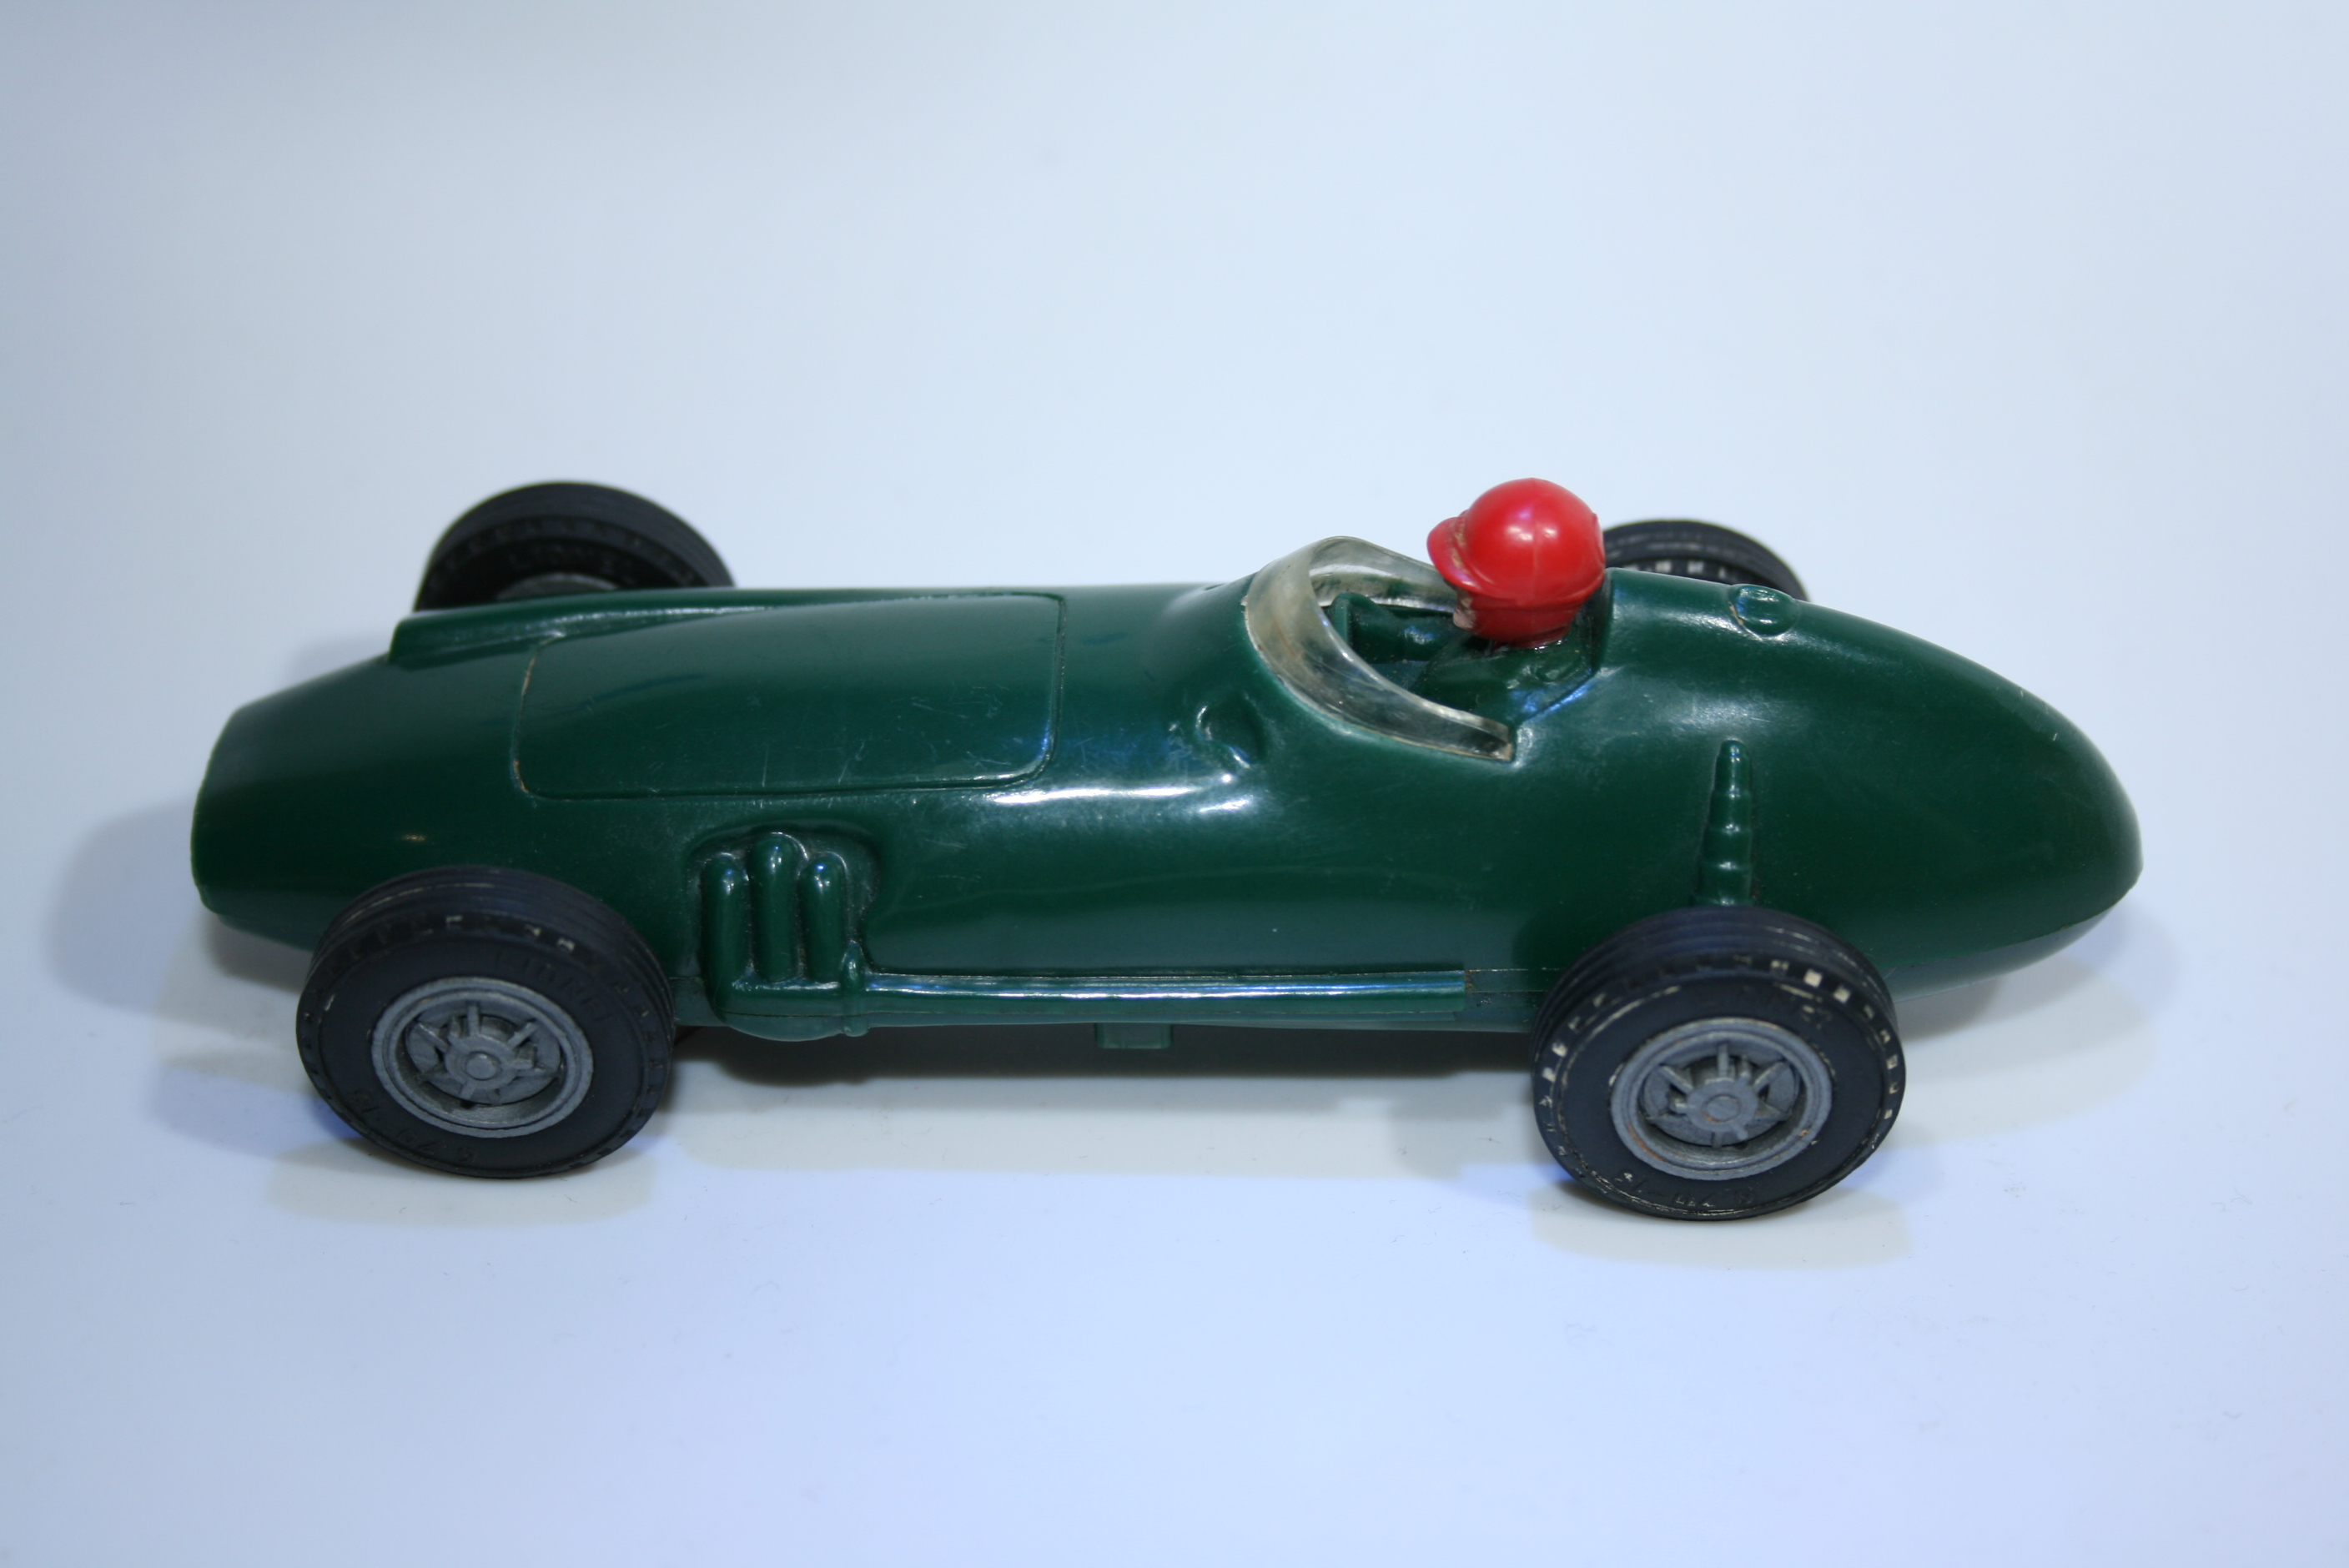 482 BRM P25 1956-1959 S Moss - Lionel - 5211 - 1963